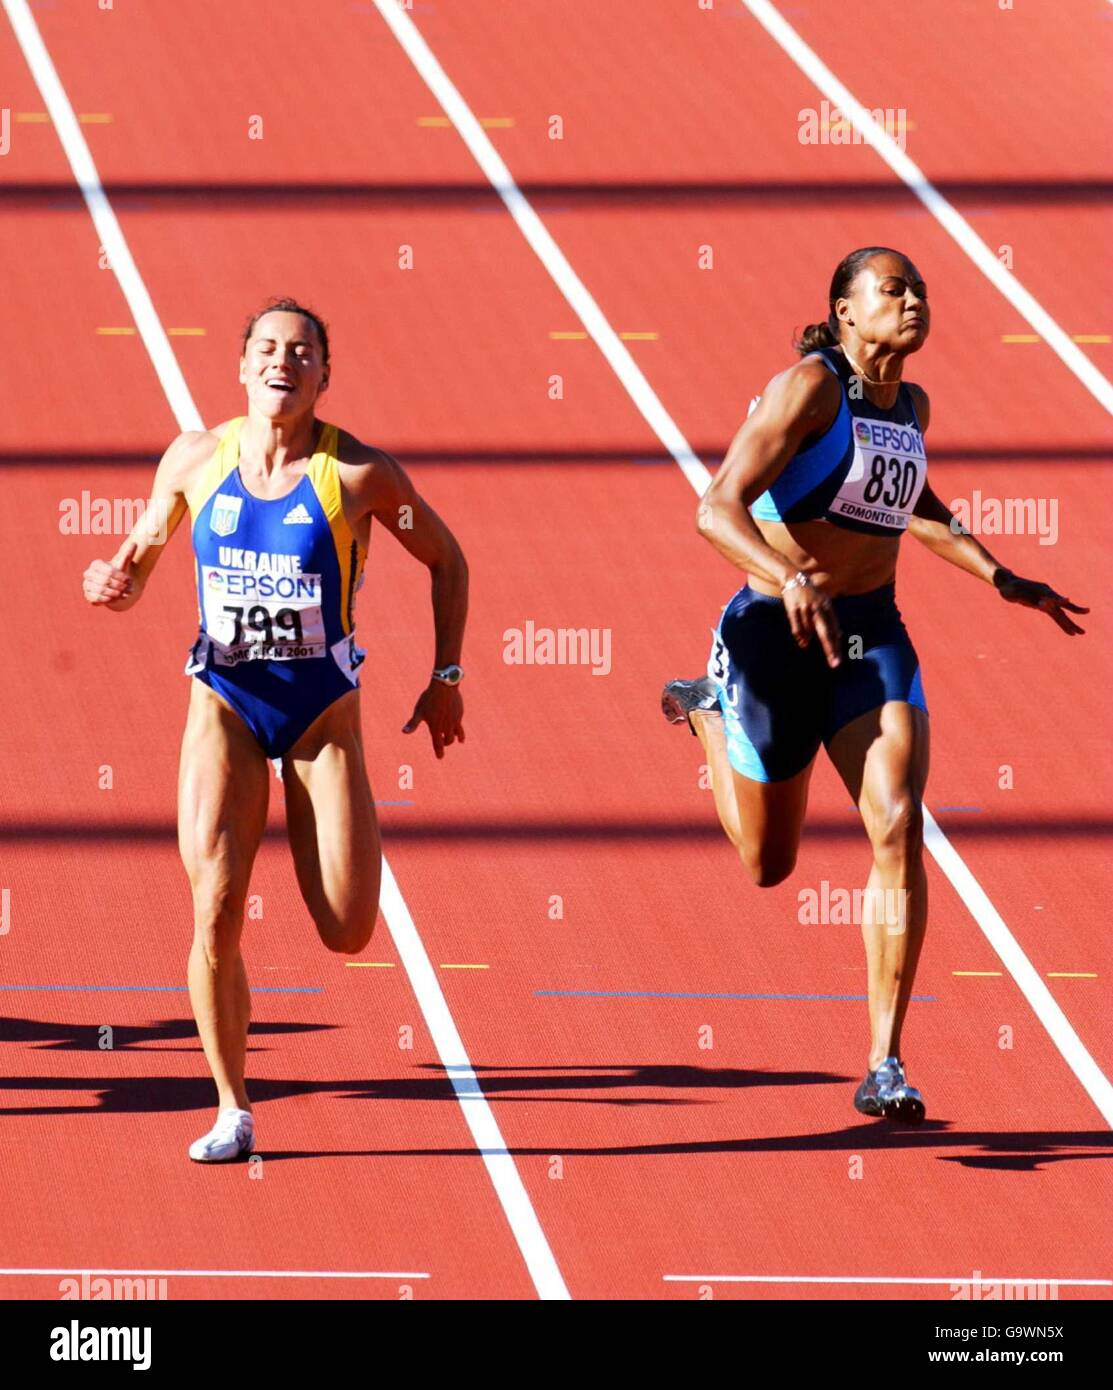 Communication on this topic: Dorothea Wolbert, zhanna-pintusevich-block-sprint-runner-world-100-m-200-m/